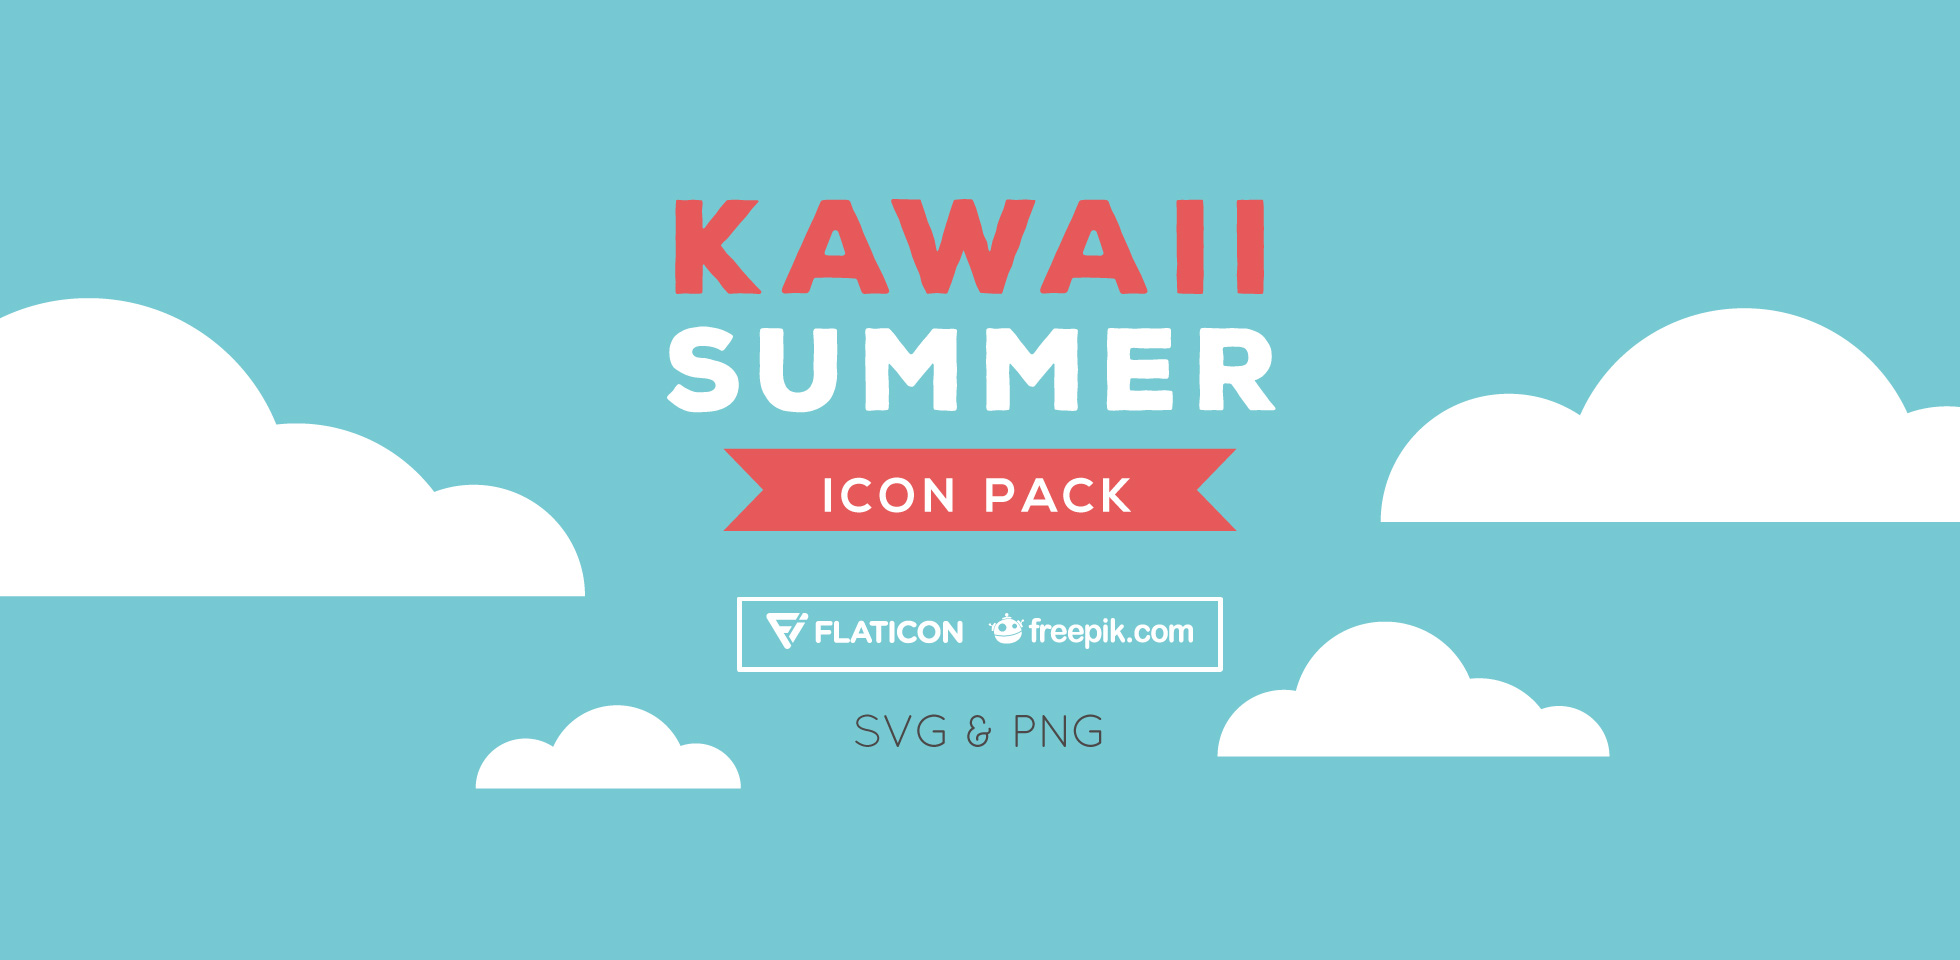 Free Download: Kawaii Summer Icon Pack